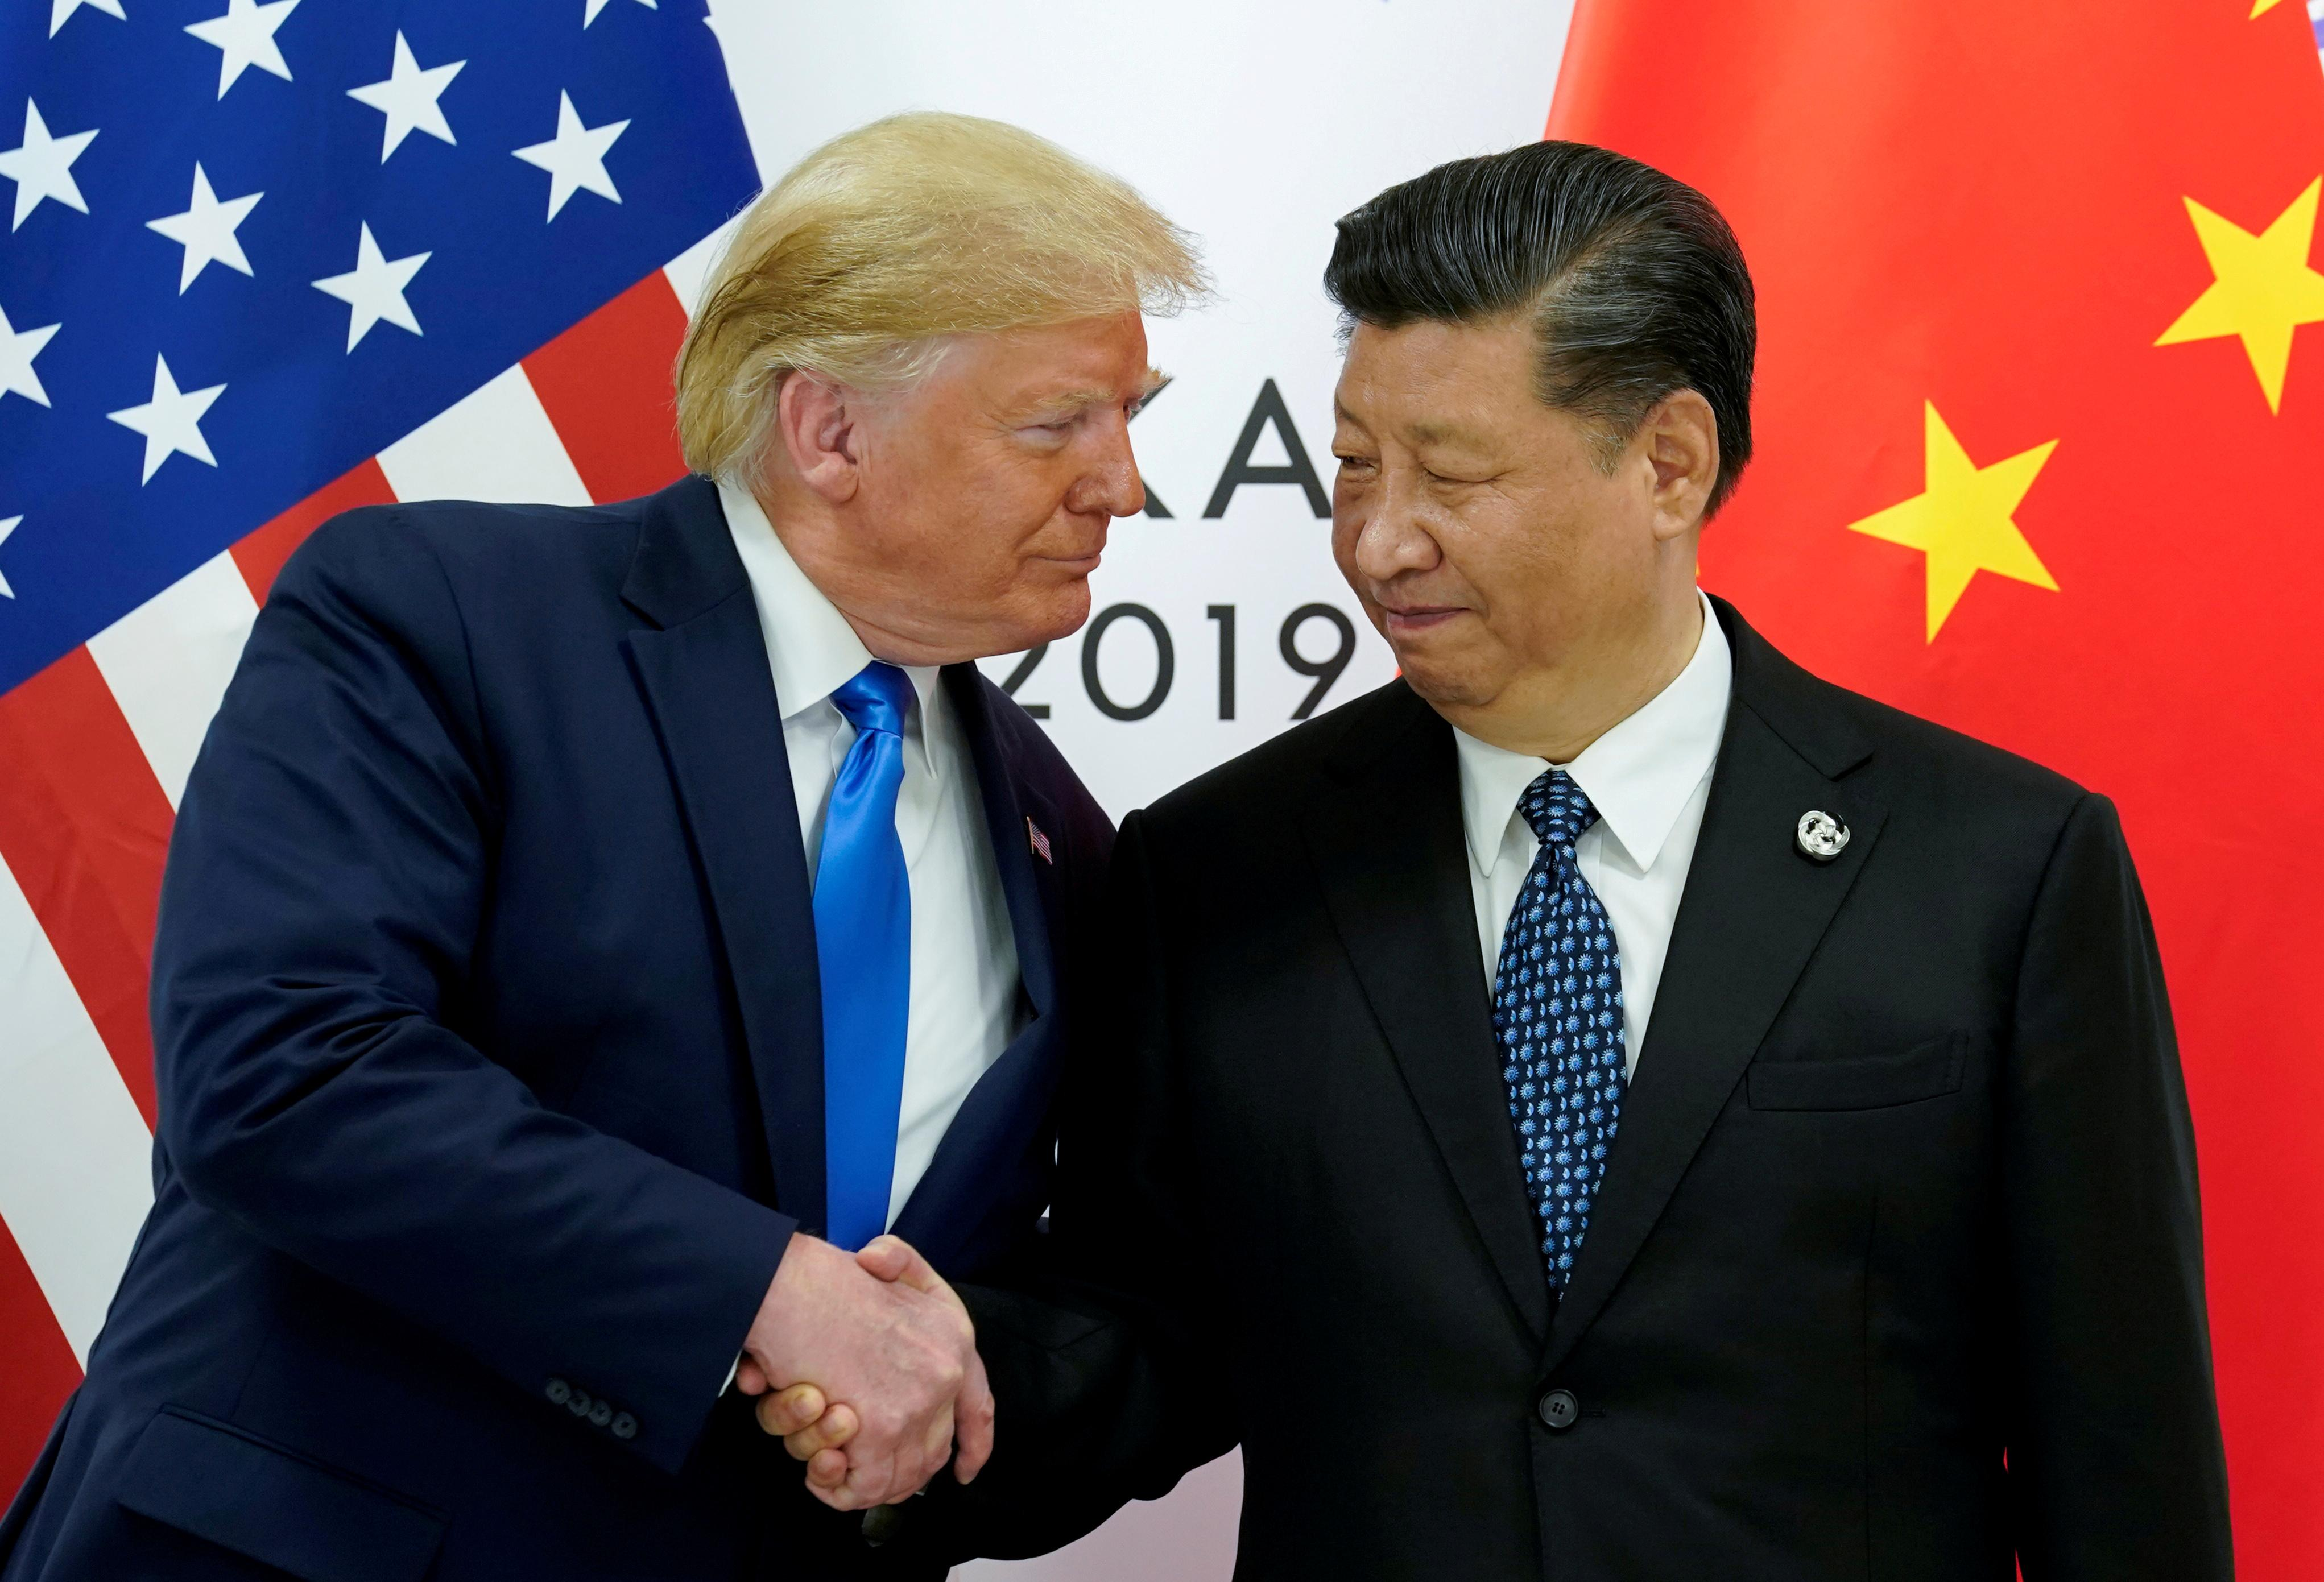 A U.S.-China 'Phase One' trade deal may not be inked this year